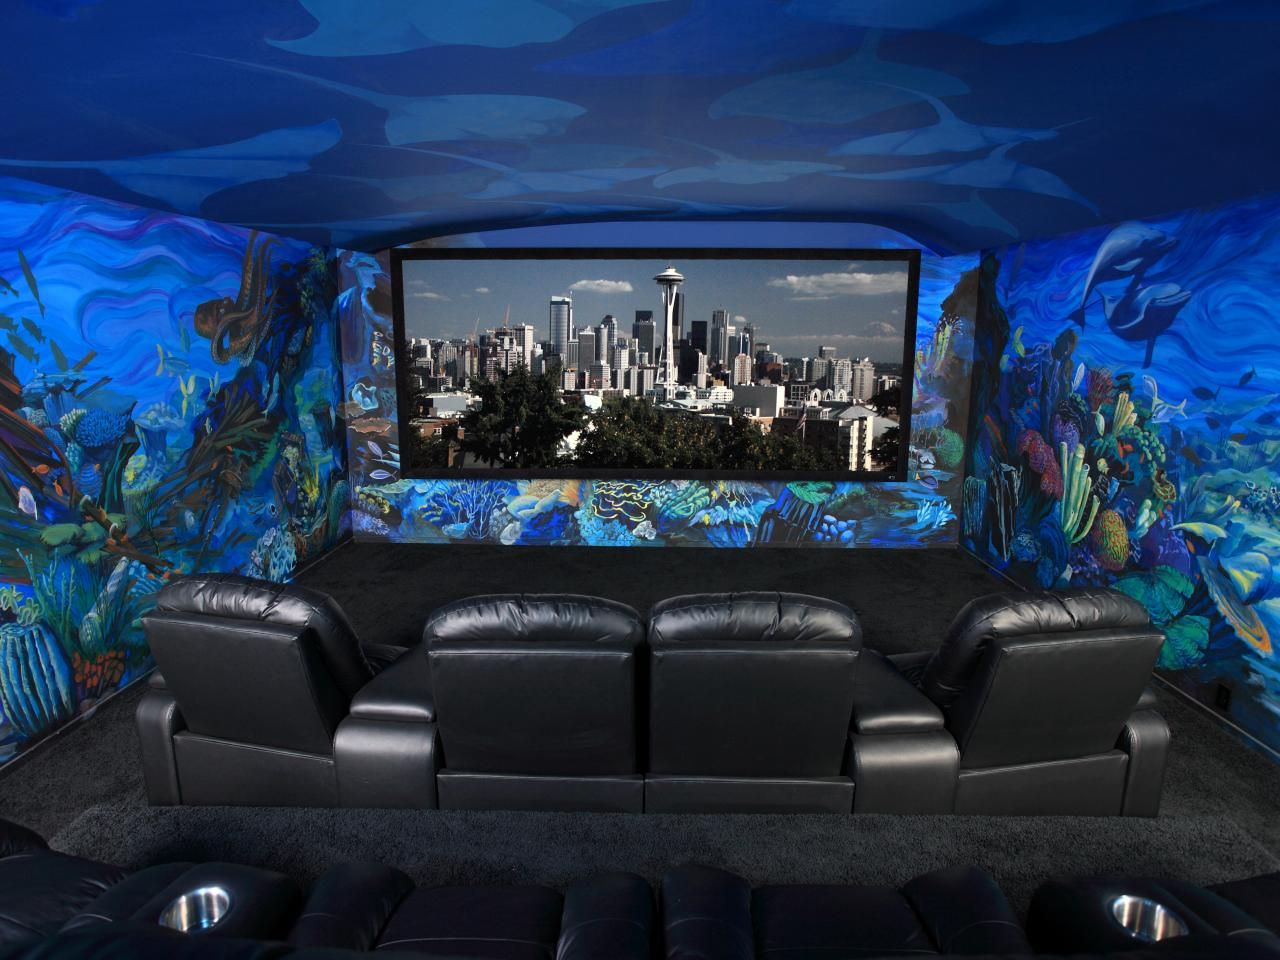 Media Room Design Ideas: Pictures, Options U0026 Tips. Home Theater ...